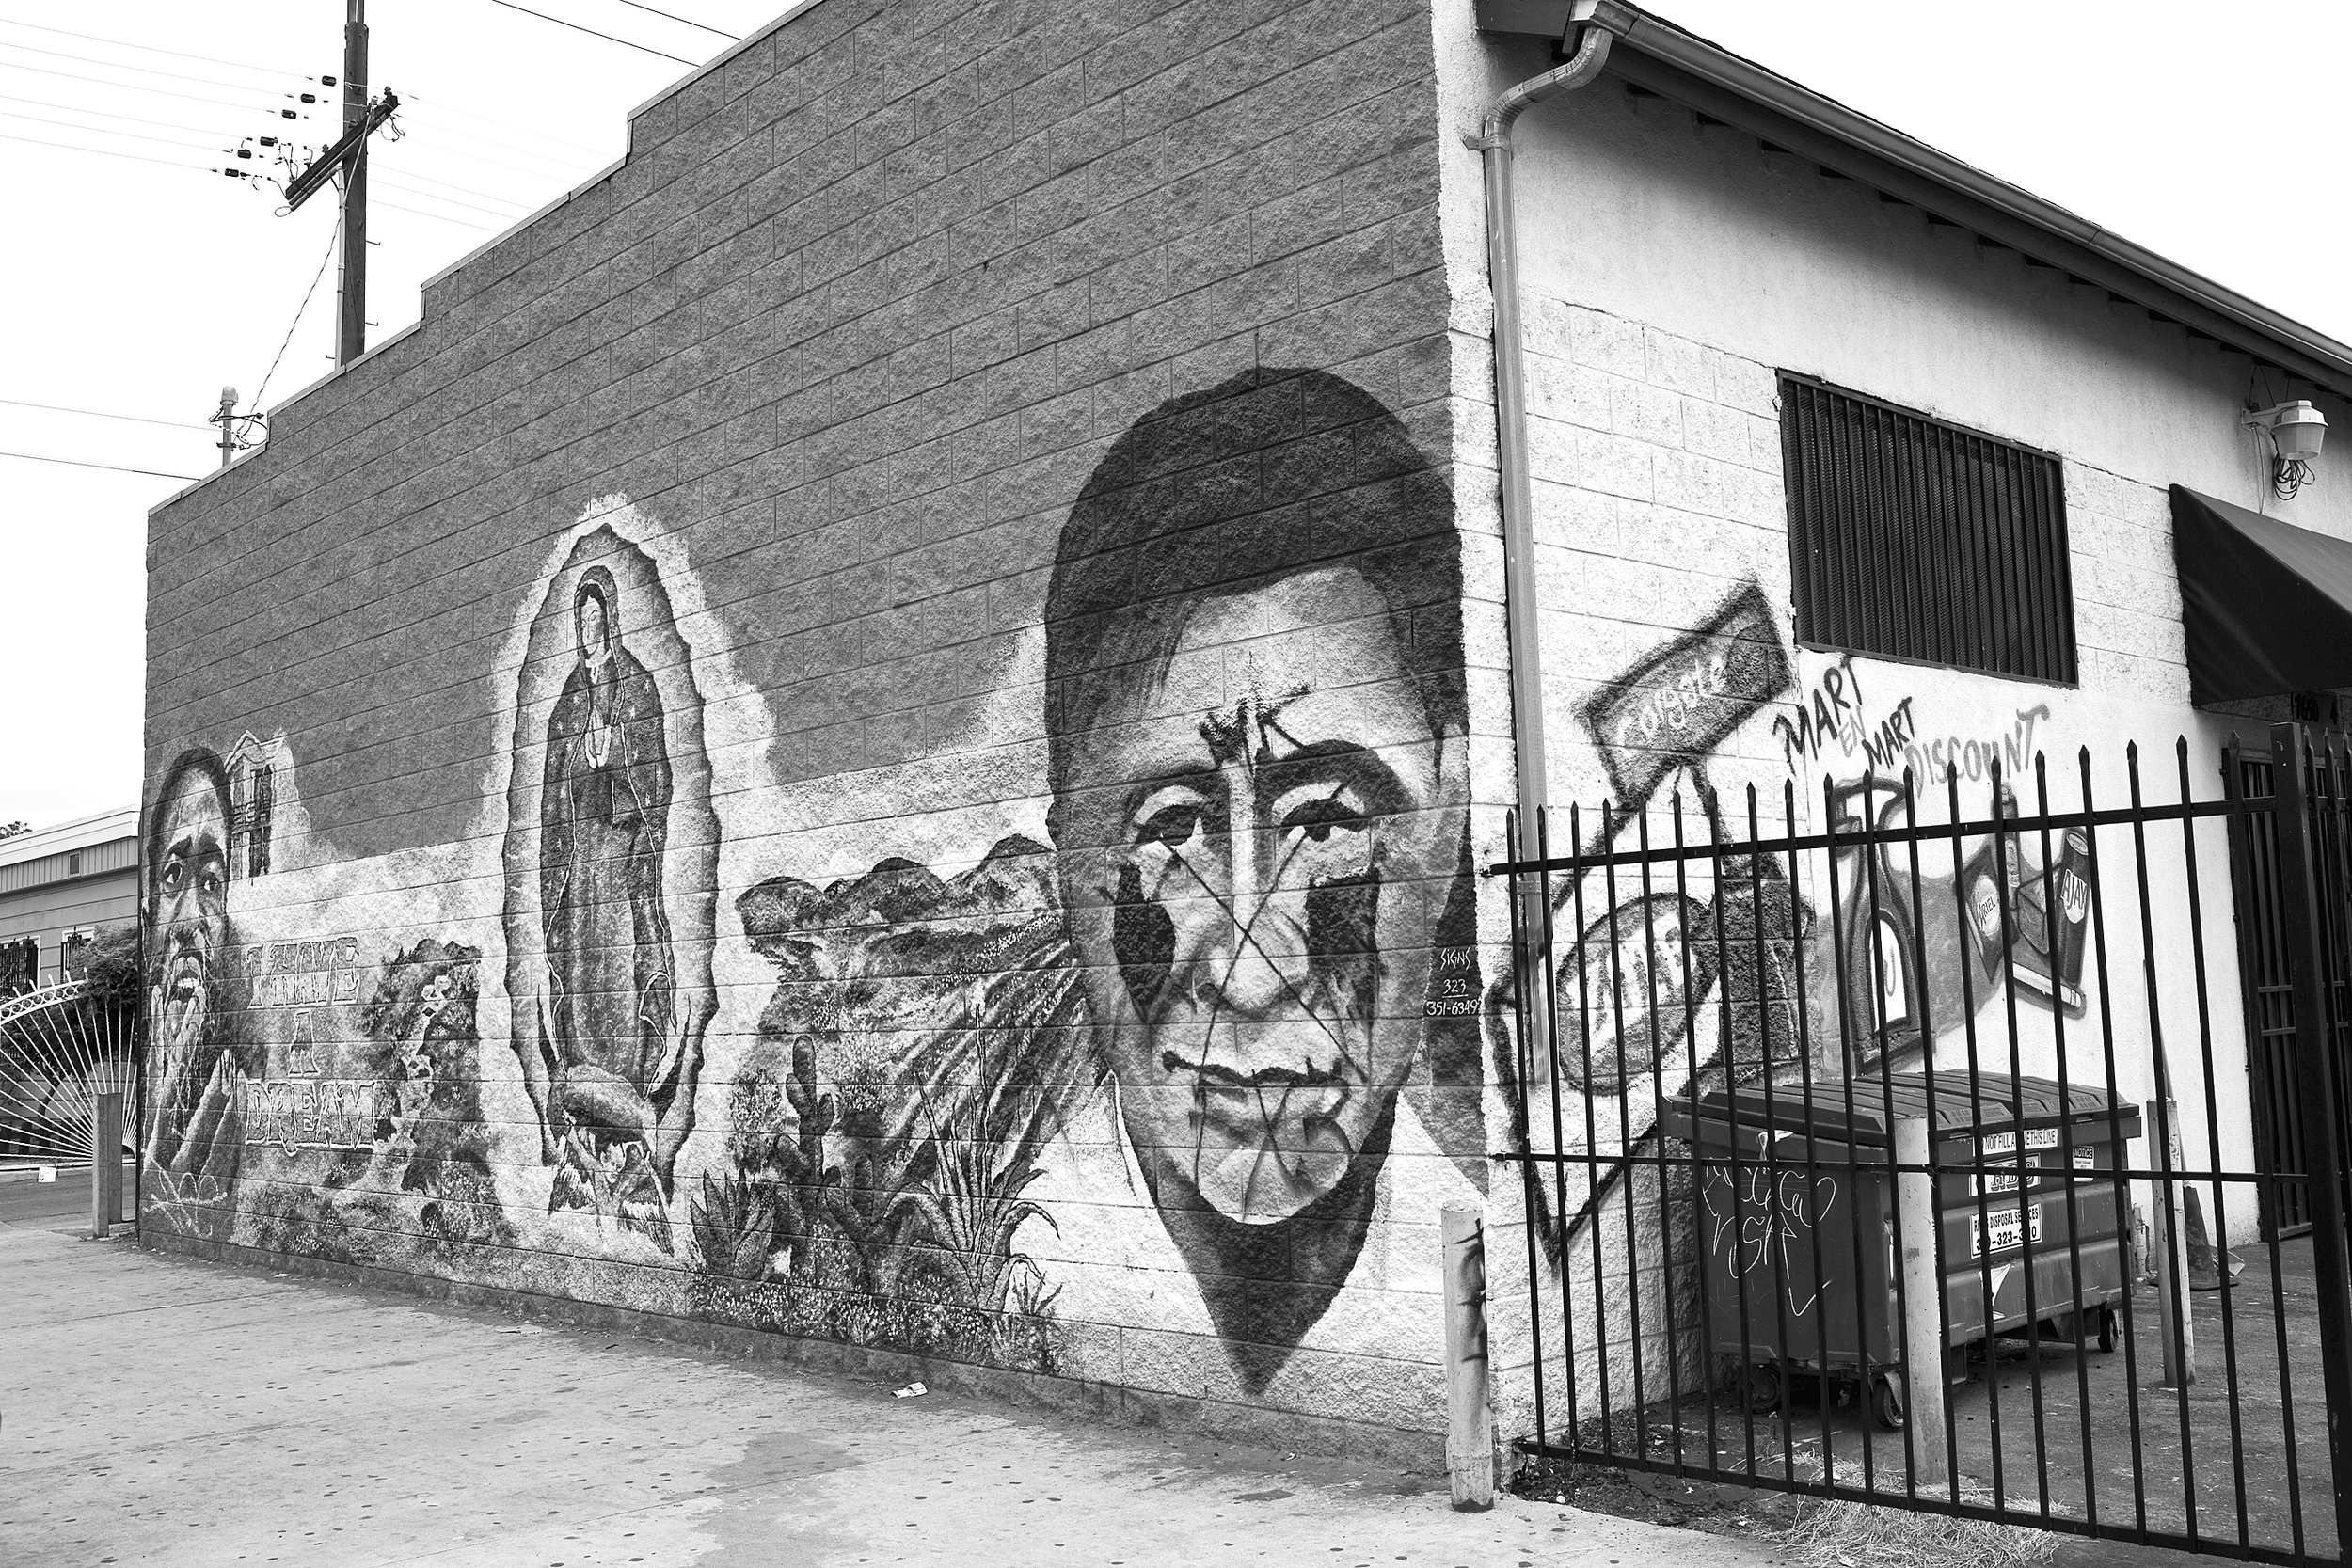 """A mural painted on the wall of a convenience store in South Los Angeles features Martin Luther King, Jr., the Virgin of Guadalupe, and César Chávez. The mural was commissioned by building owner Abel Jimenez and painted by an artist named Saul (last name unknown). 2009.                                0     false             18 pt     18 pt     0     0         false     false     false                                                     /* Style Definitions */ table.MsoNormalTable {mso-style-name:""""Table Normal""""; mso-tstyle-rowband-size:0; mso-tstyle-colband-size:0; mso-style-noshow:yes; mso-style-parent:""""""""; mso-padding-alt:0in 5.4pt 0in 5.4pt; mso-para-margin:0in; mso-para-margin-bottom:.0001pt; mso-pagination:widow-orphan; font-size:10.0pt; font-family:""""Times New Roman"""";}"""